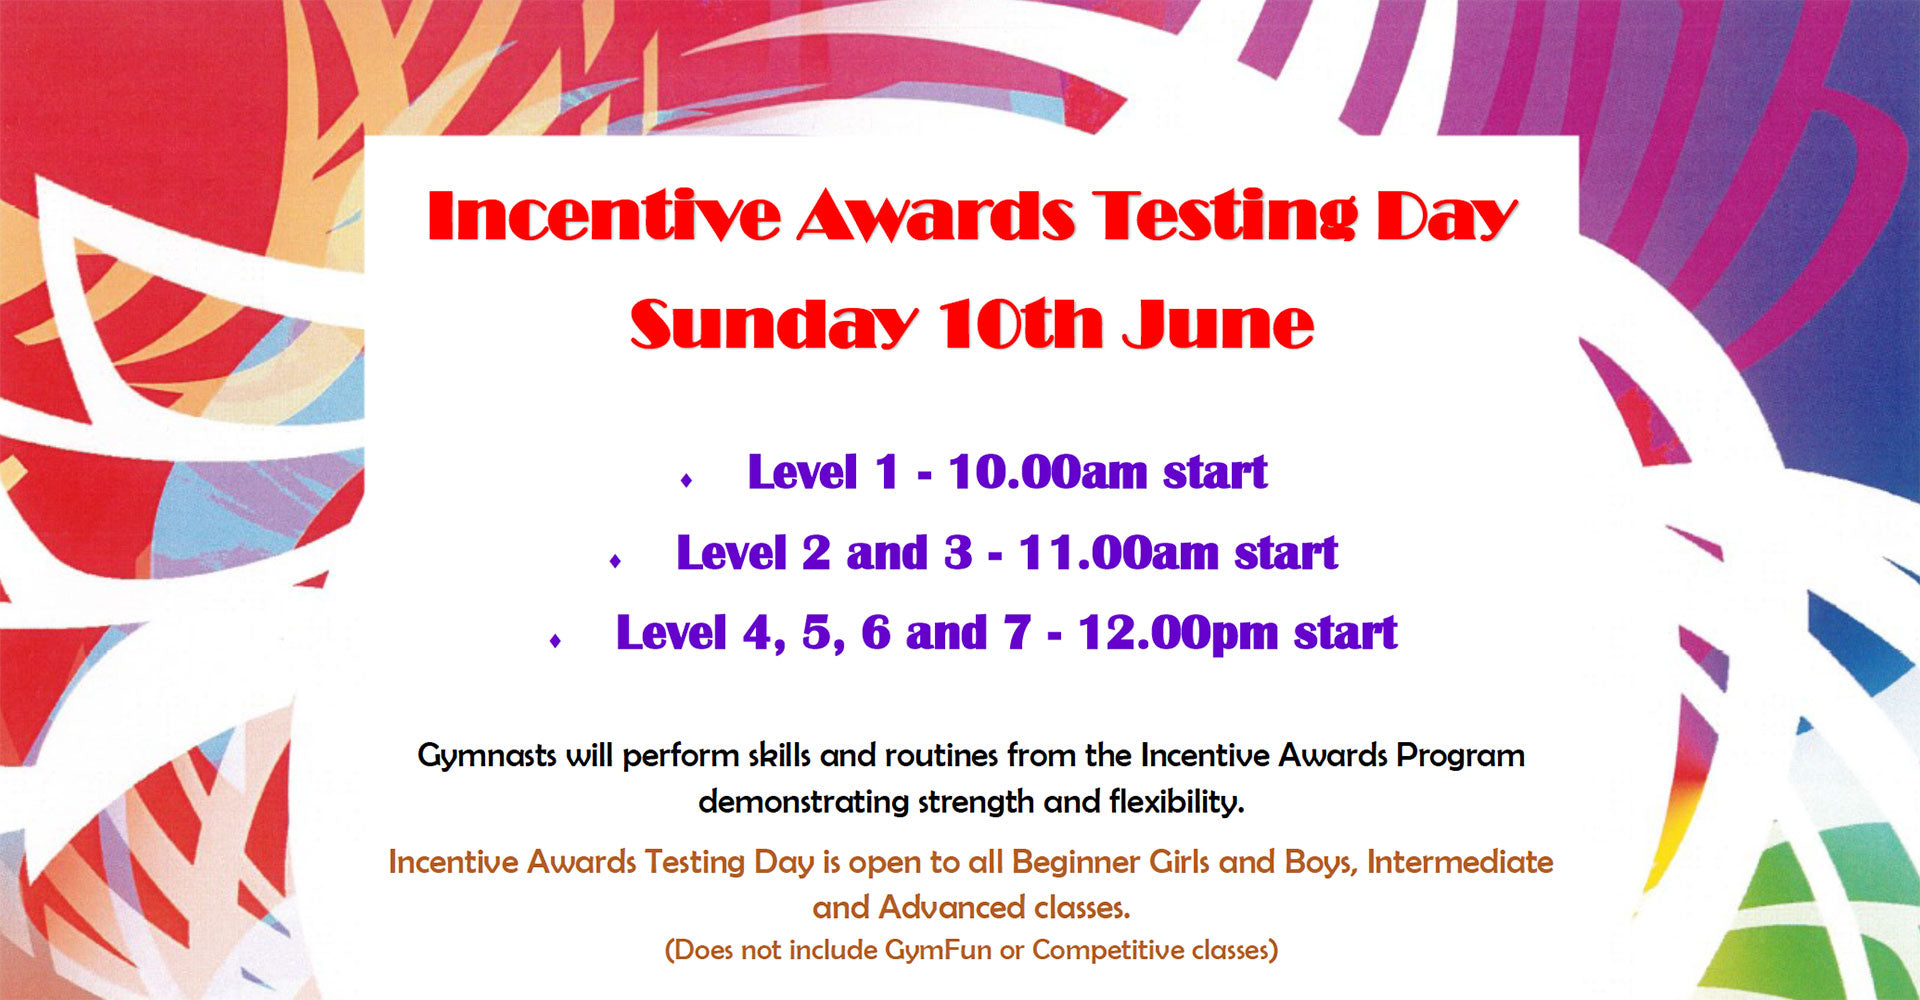 Incentive Awards - Sunday 10th June 2018